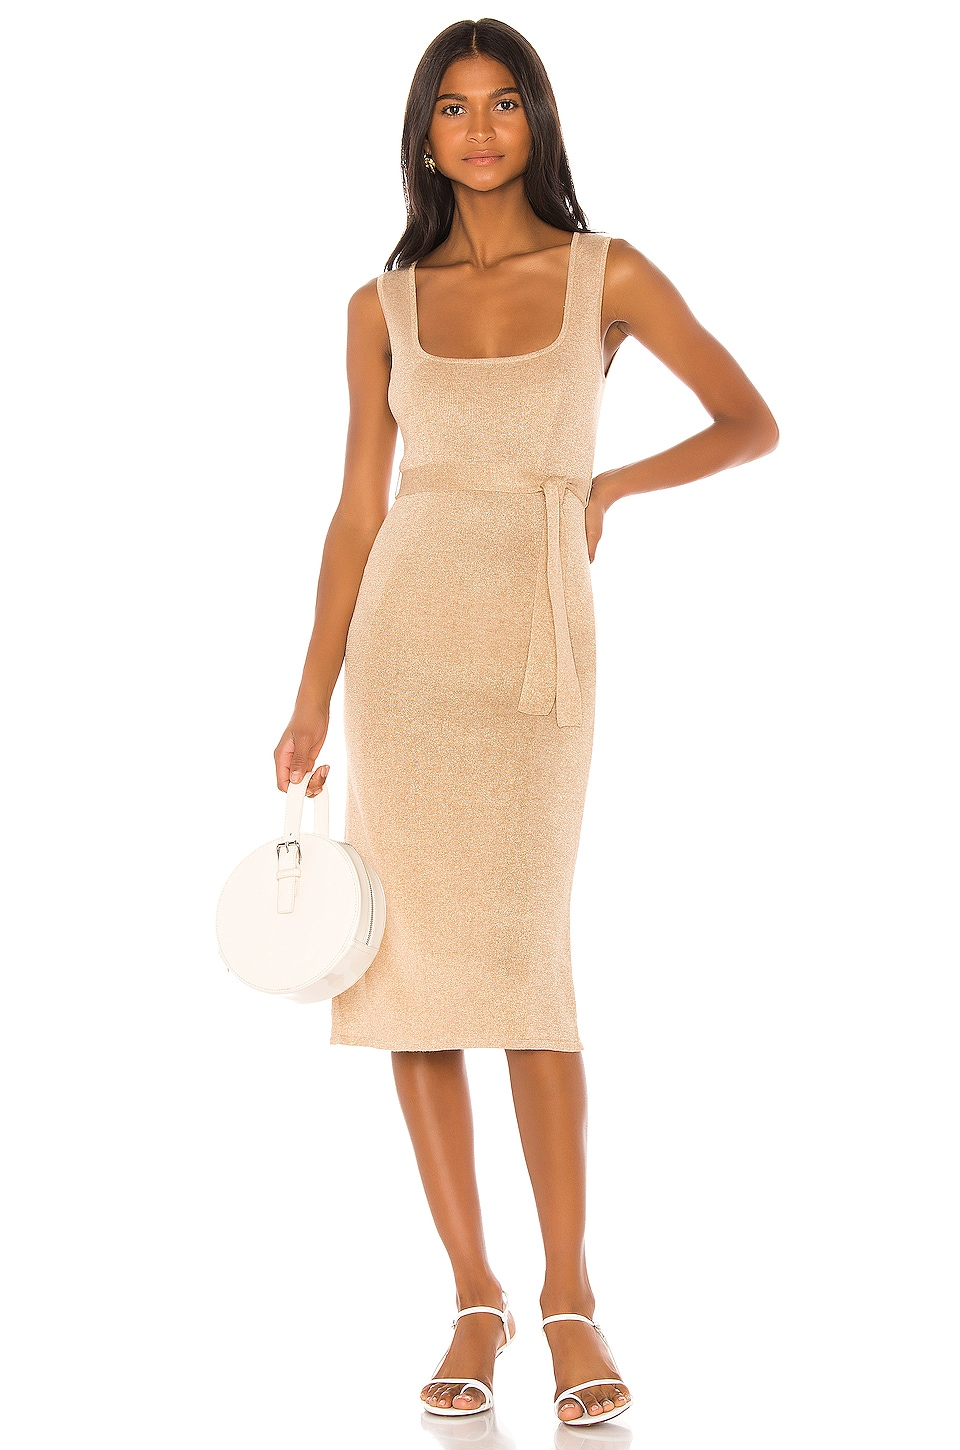 Song of Style Mikkah Dress in Cinnamon